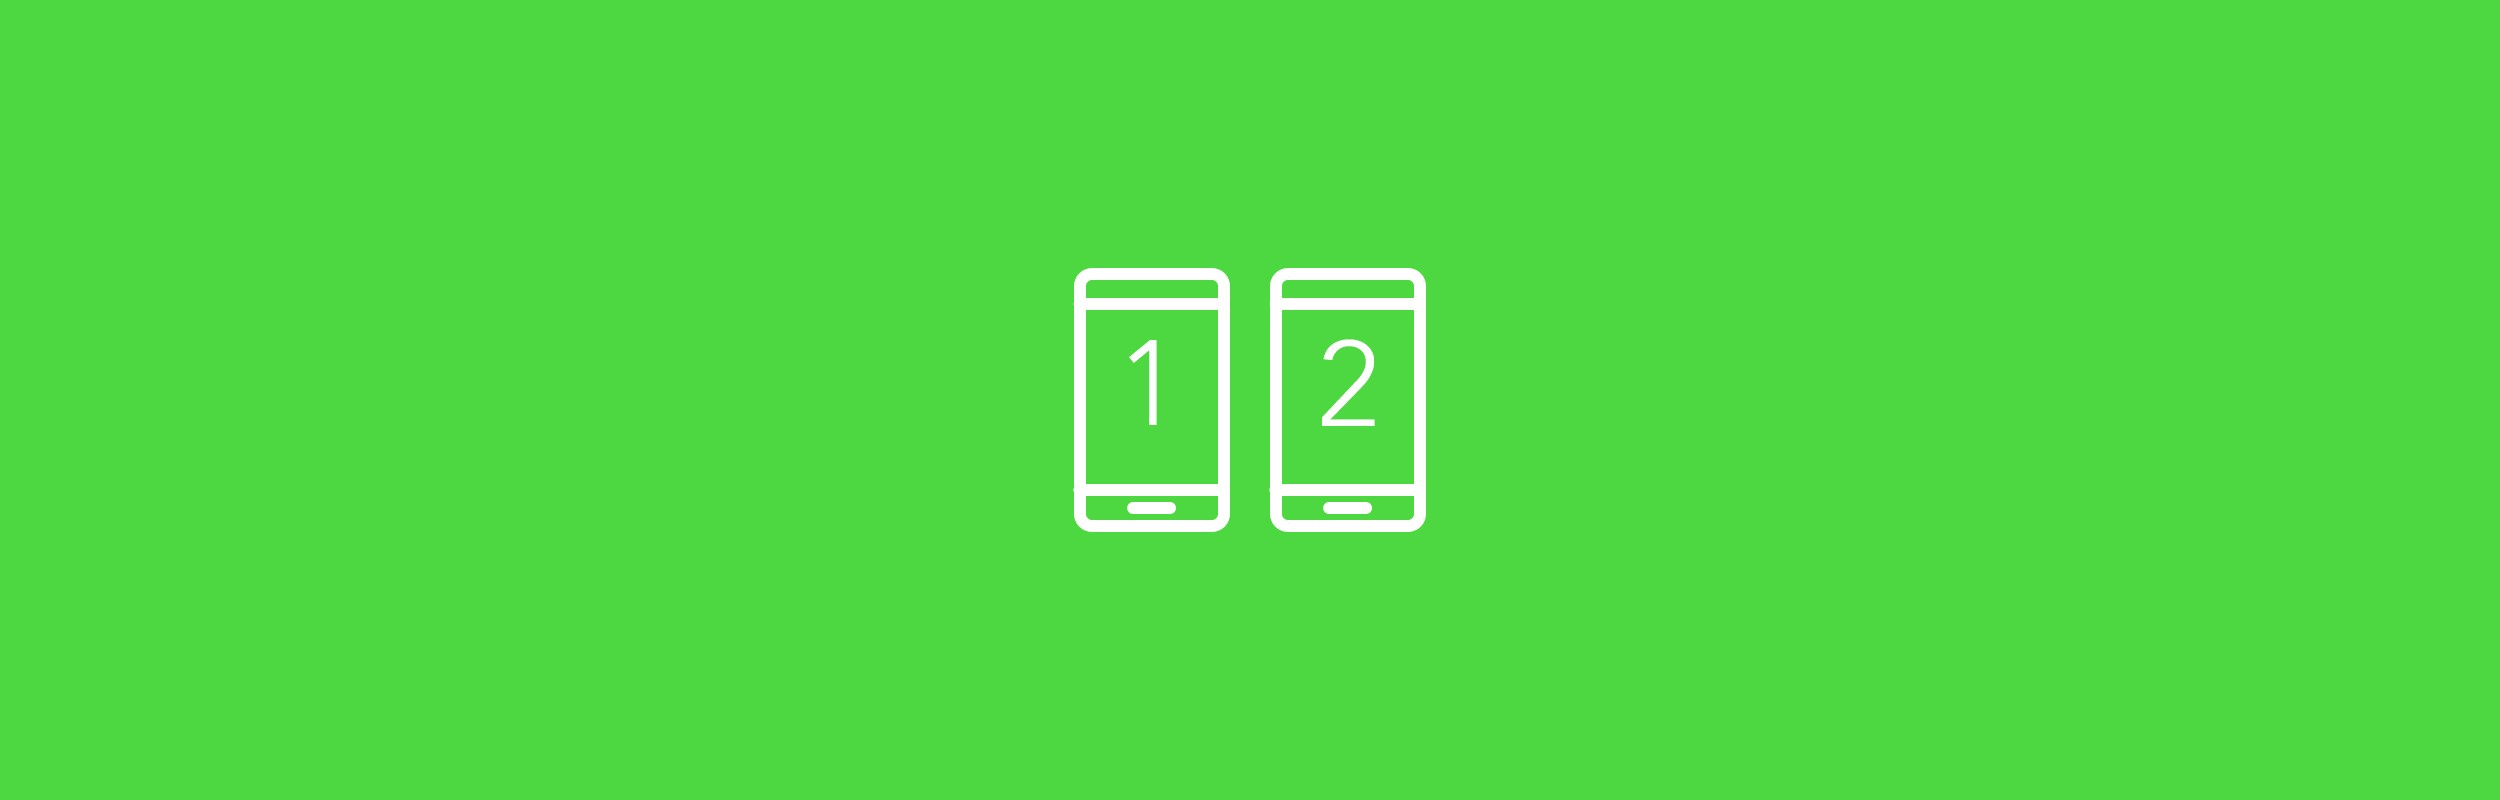 Moving between Activities with Intents— Android #8